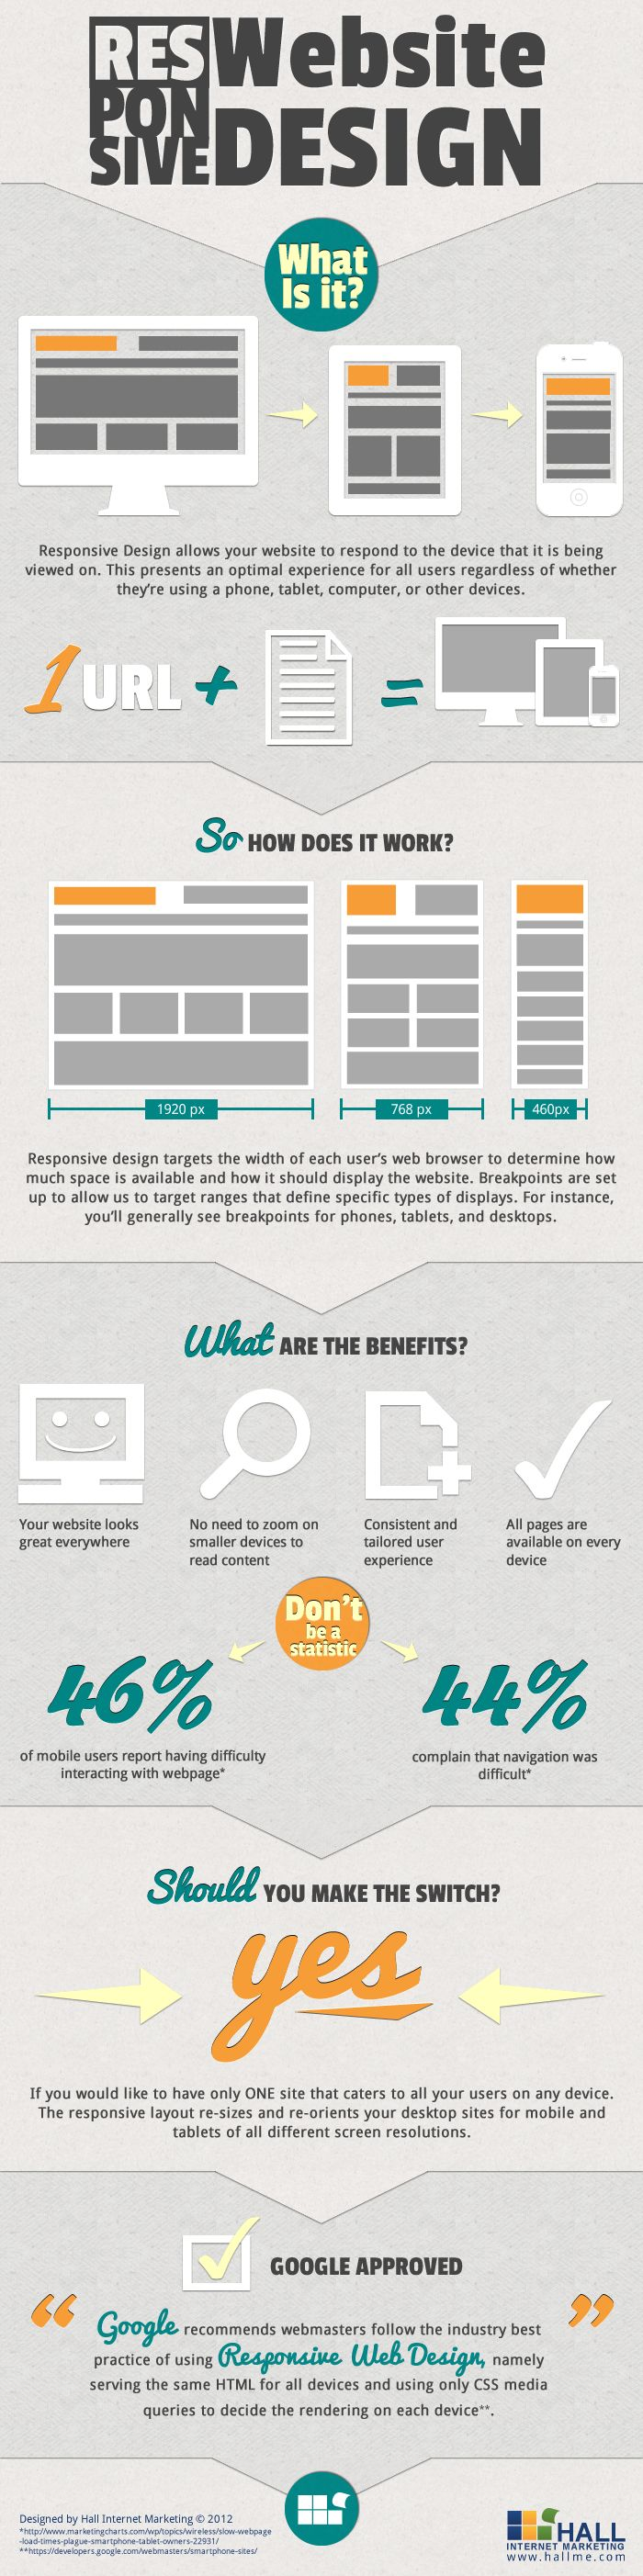 Responsive webdesign, what is it ?